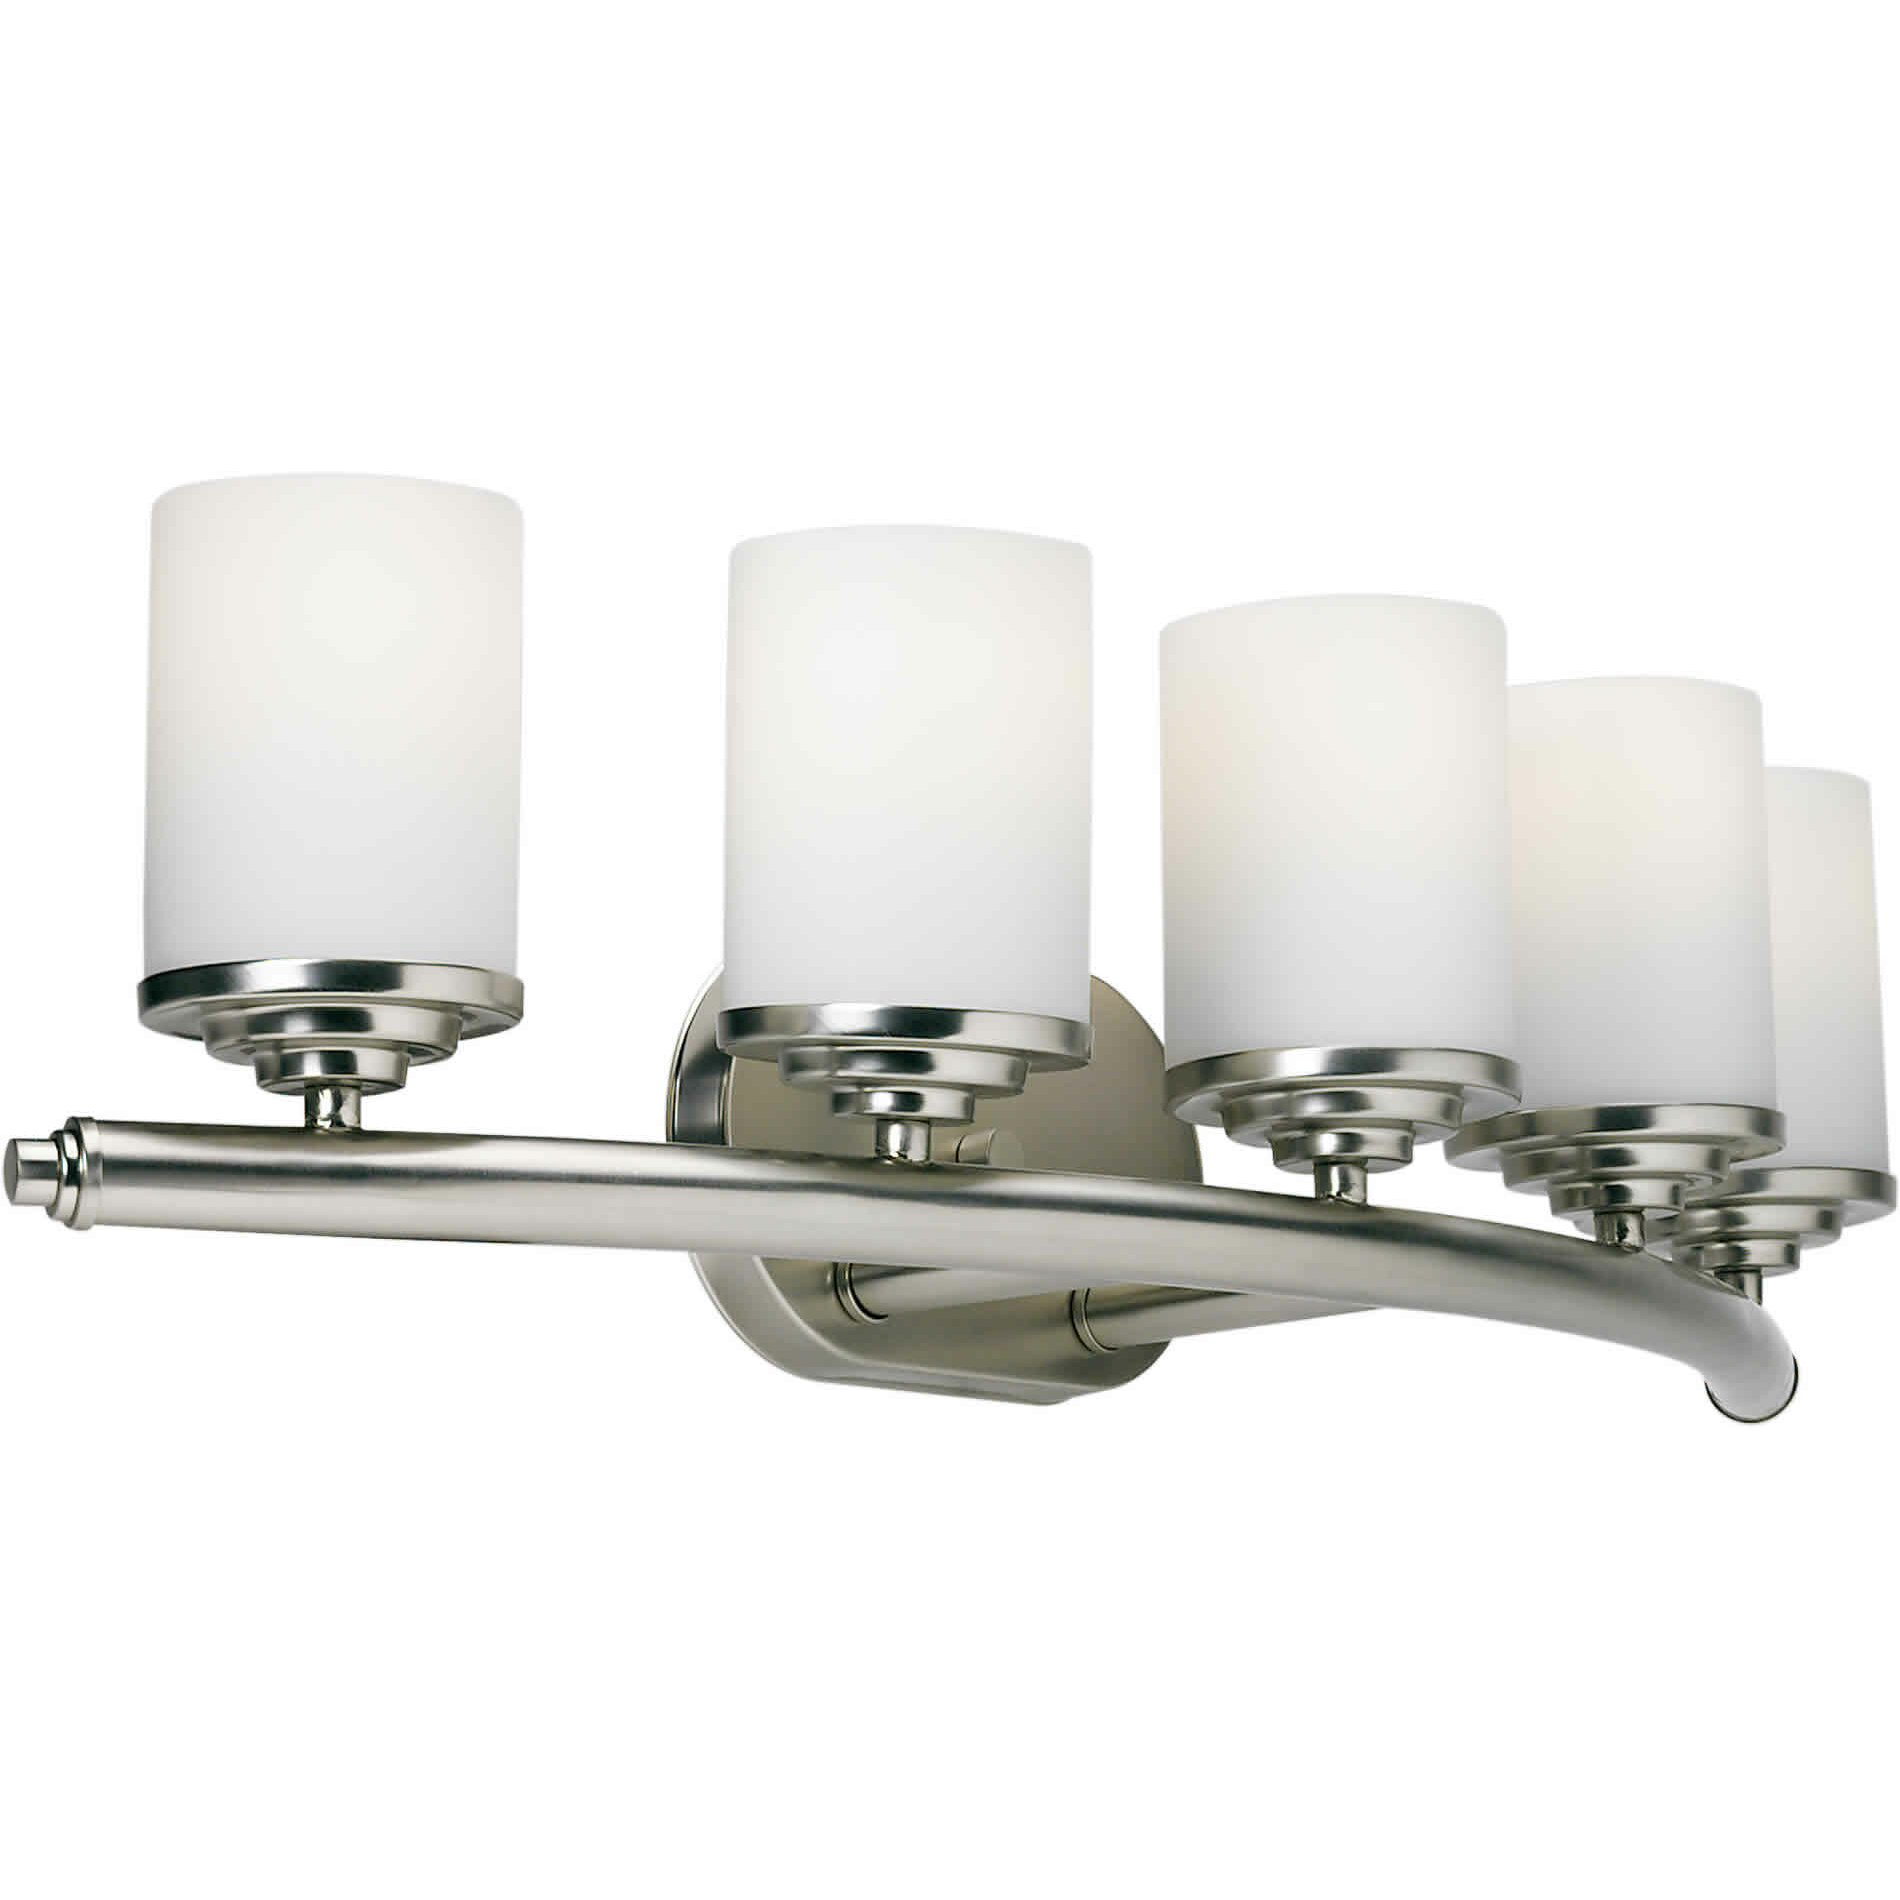 Forte Lighting 5 Light Vanity Light & Reviews Wayfair